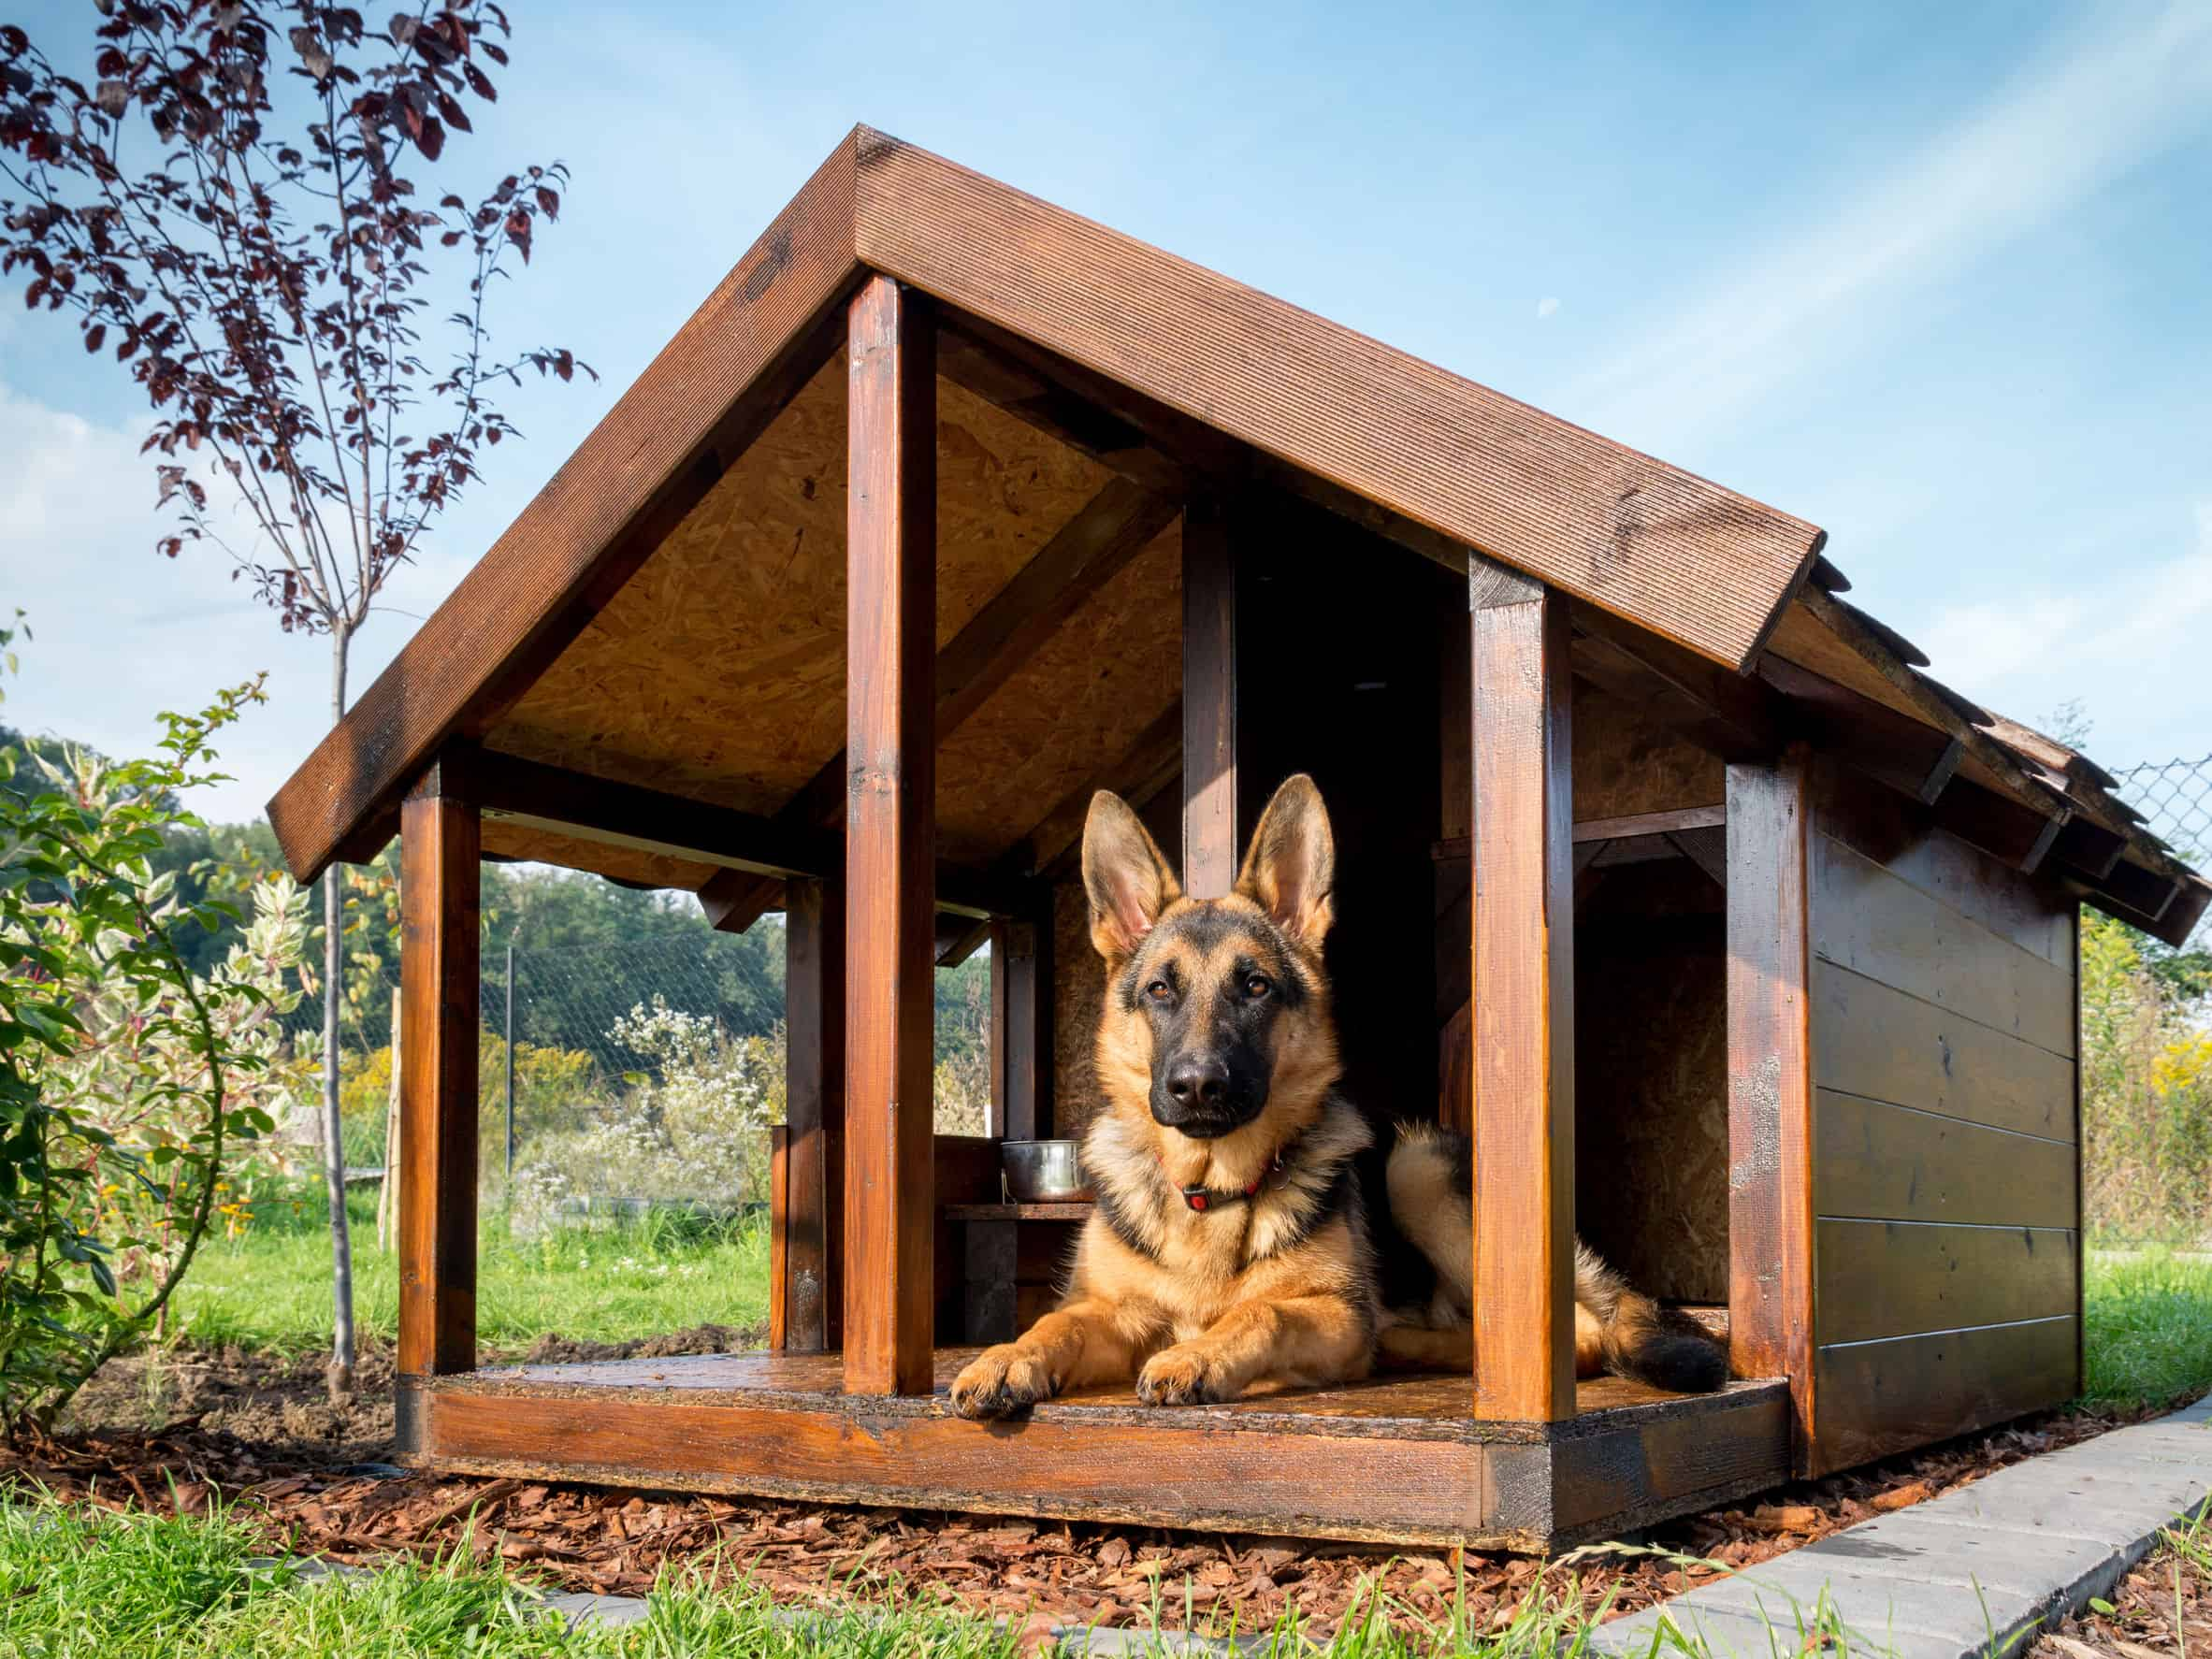 German shepherd resting in its wooden kennel